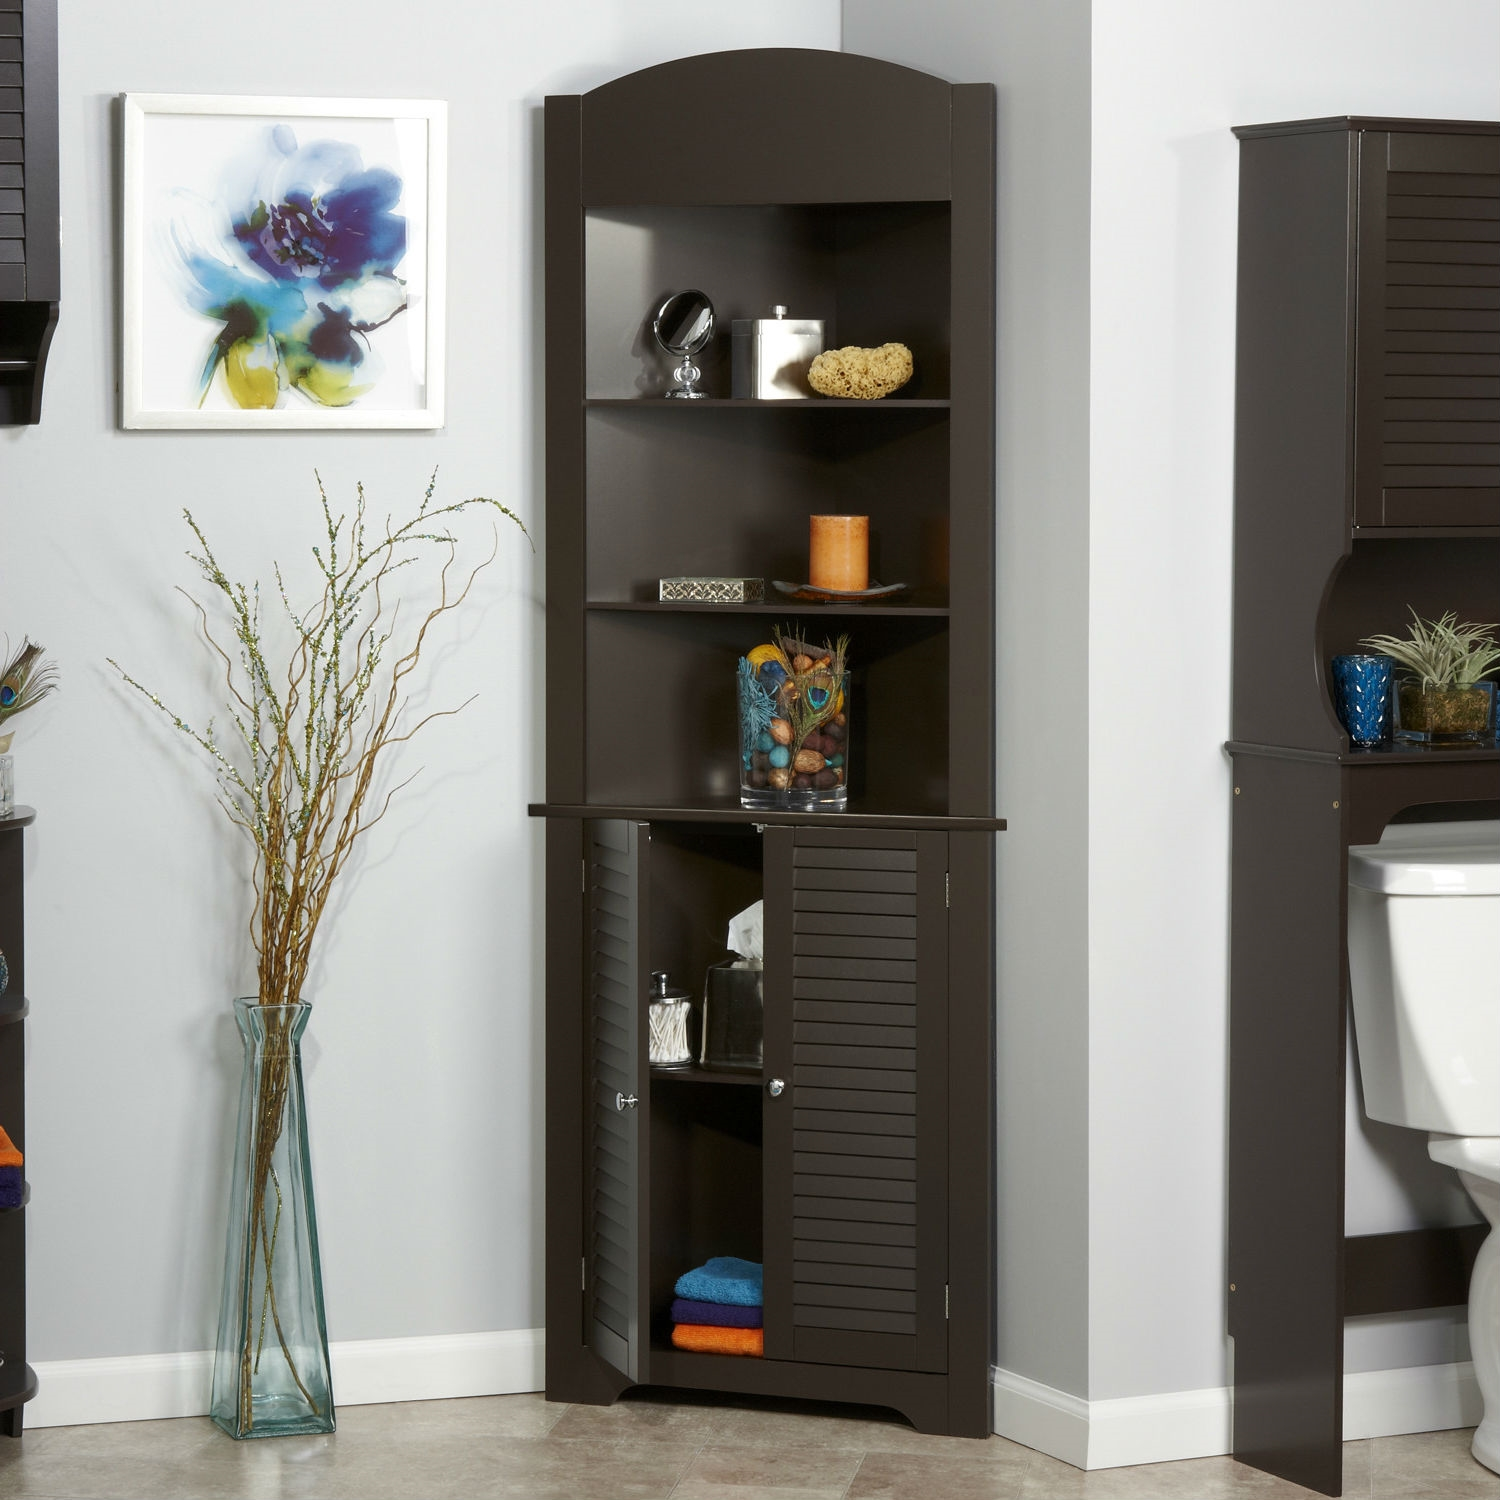 Espresso Bathroom Linen Tower Corner Towel Storage Cabinet With 3 Open Shelves Fastfurnishings Com